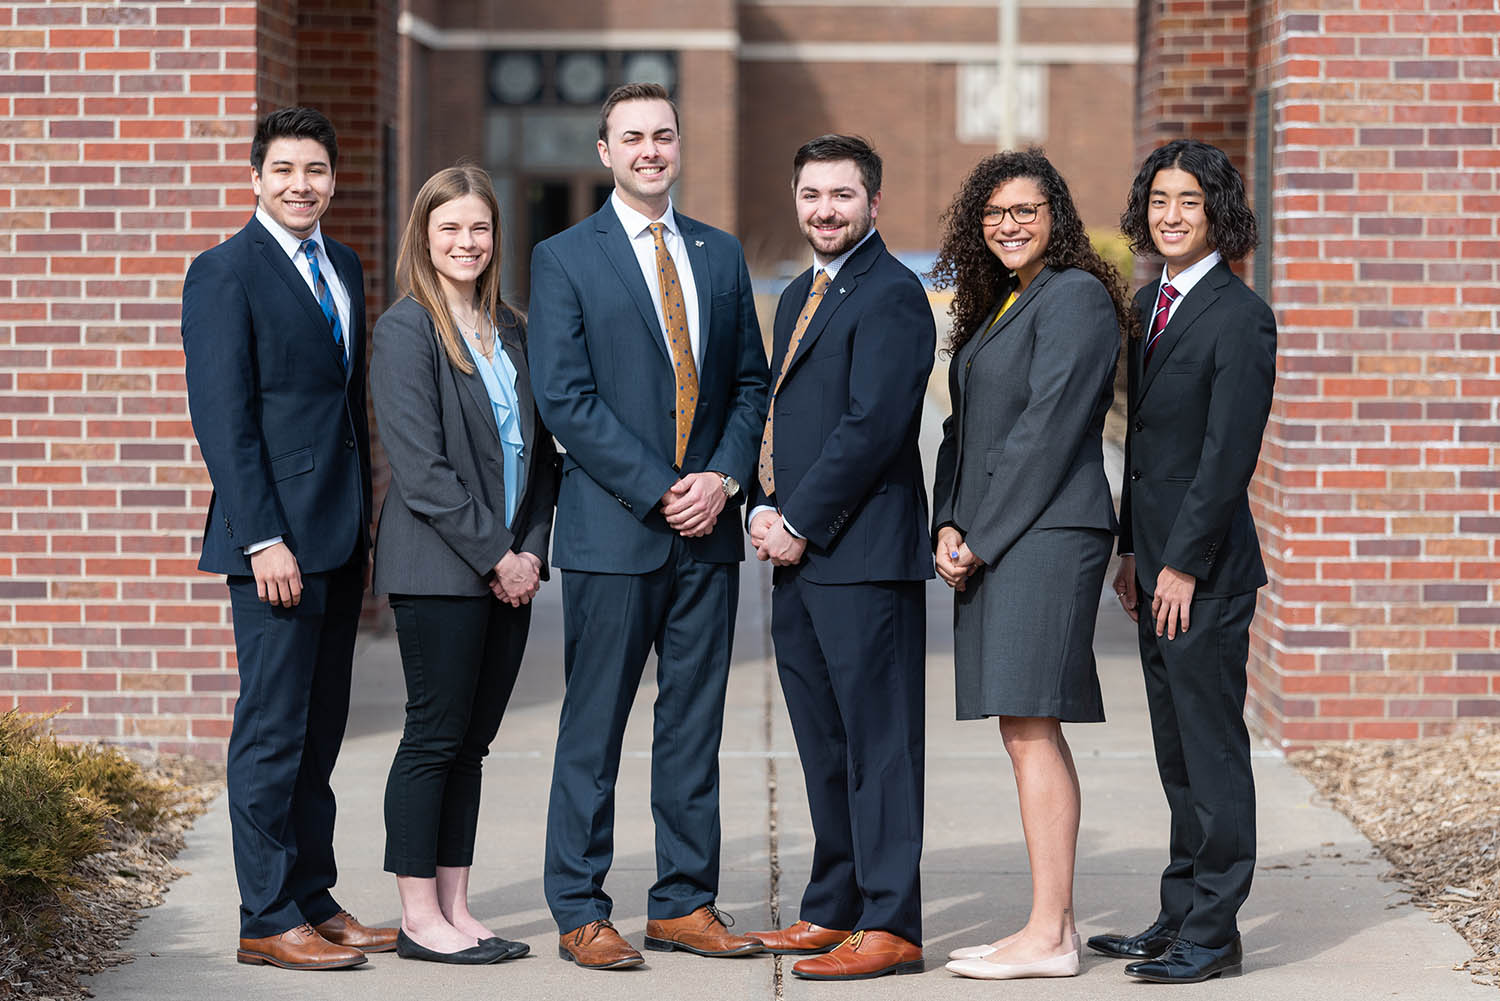 Max Beal, third from left, and Trey Janicek, fourth from left, will serve as UNK student body president and vice president for 2020-21. Their executive cabinet members are, from left, Chief of Staff Adrian Gomez Ramos, Secretary of Community Relations Ashly Helfrich, Secretary of Student Organizations and Affairs Olivia Slater and Secretary of the Treasury Kosuke Yoshii. (Courtesy photos)